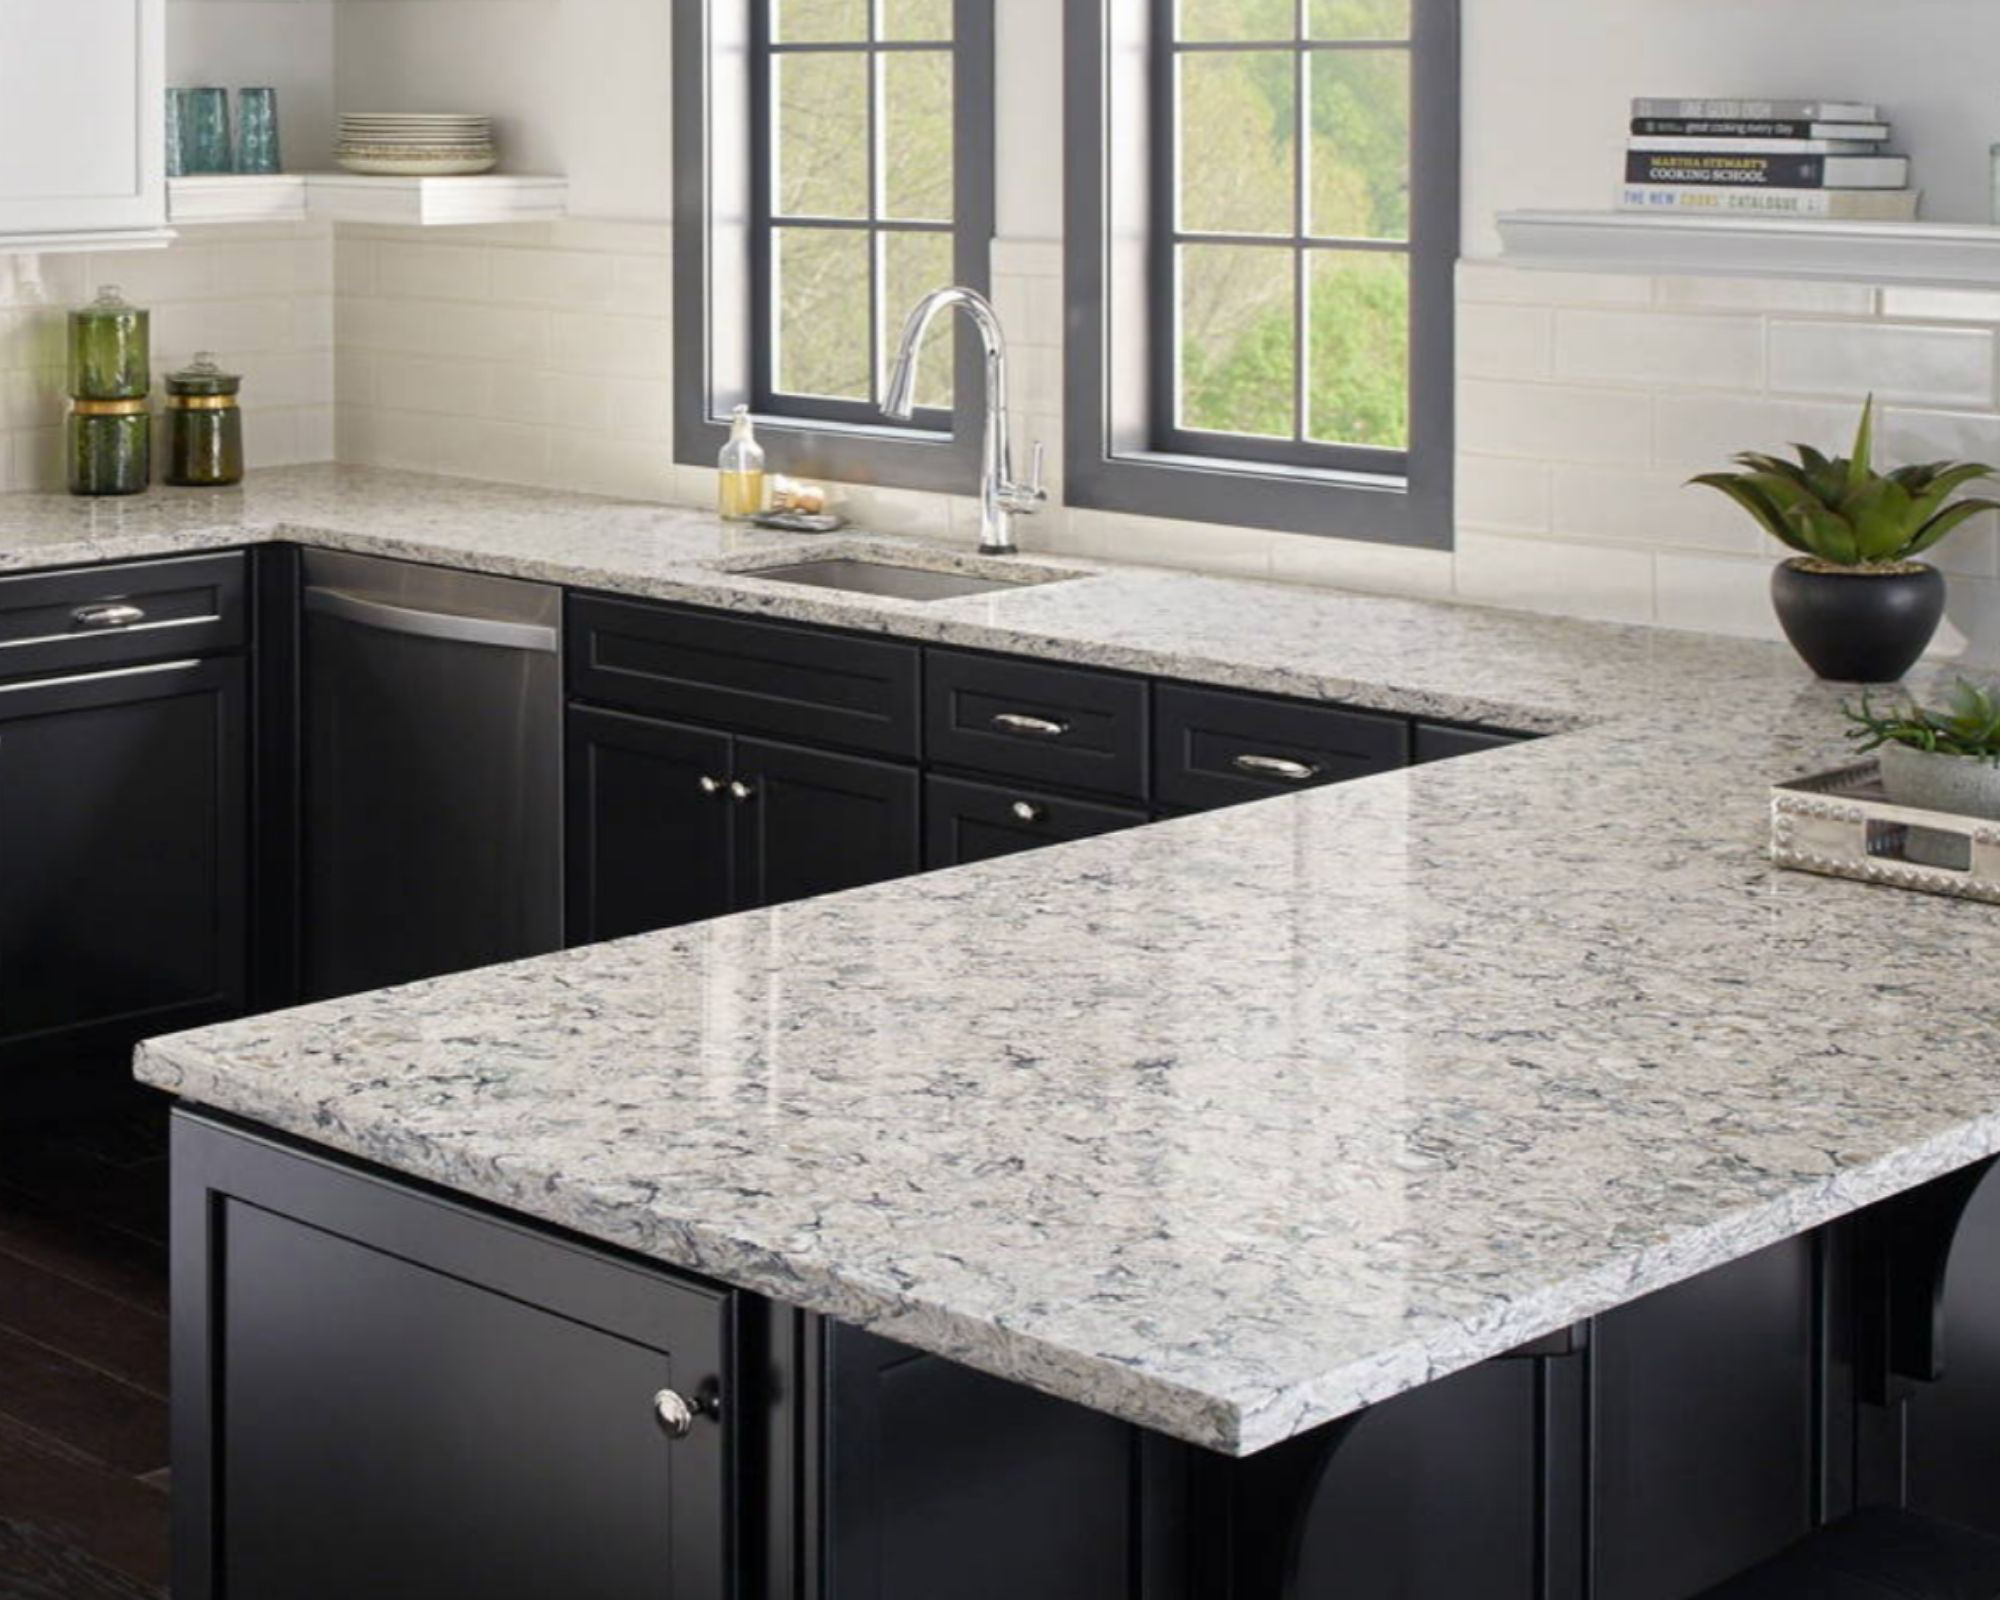 Are Quartz Countertops Stain Resistant?